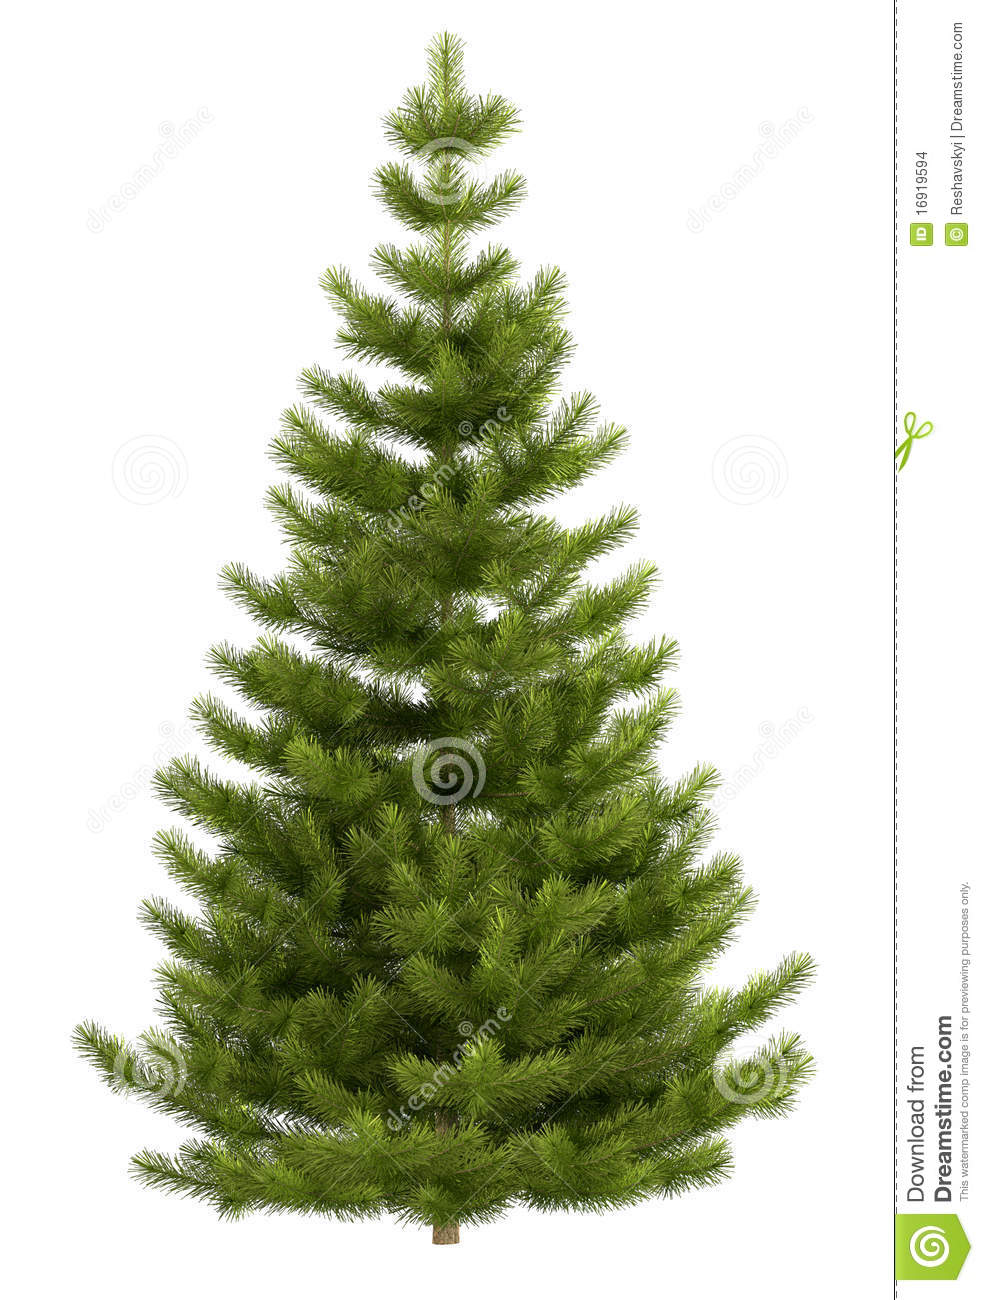 Delightful Christmas Tree Without Lights Part - 5: Christmas Fir Isolated Tree ...